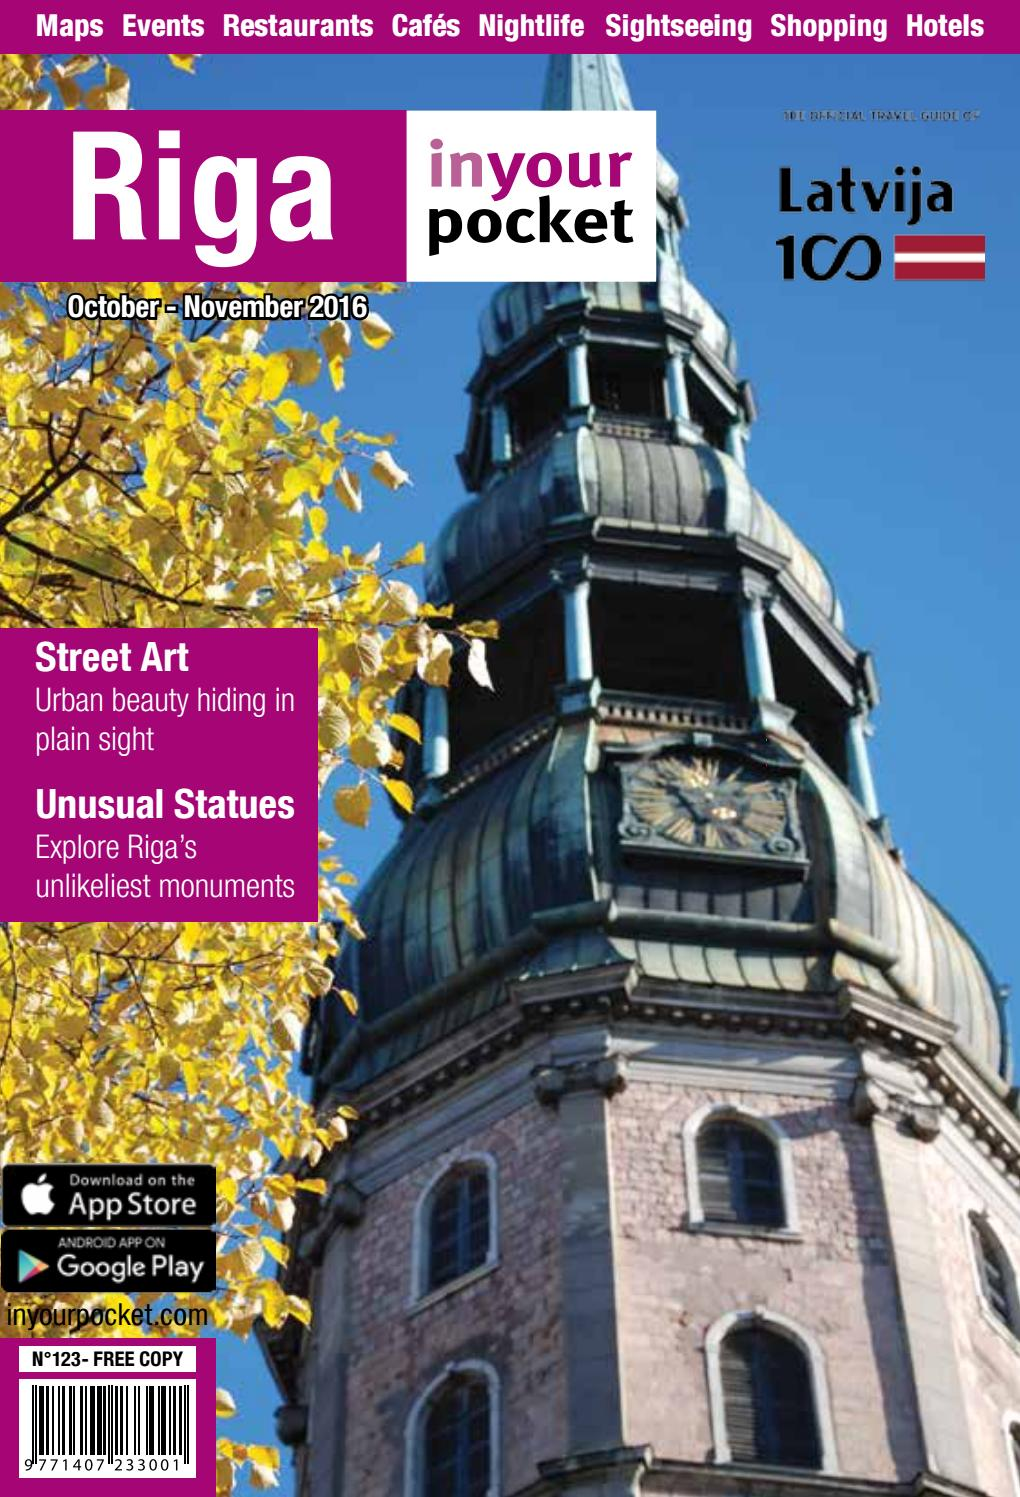 Cityguide lille by youropi.com   issuu